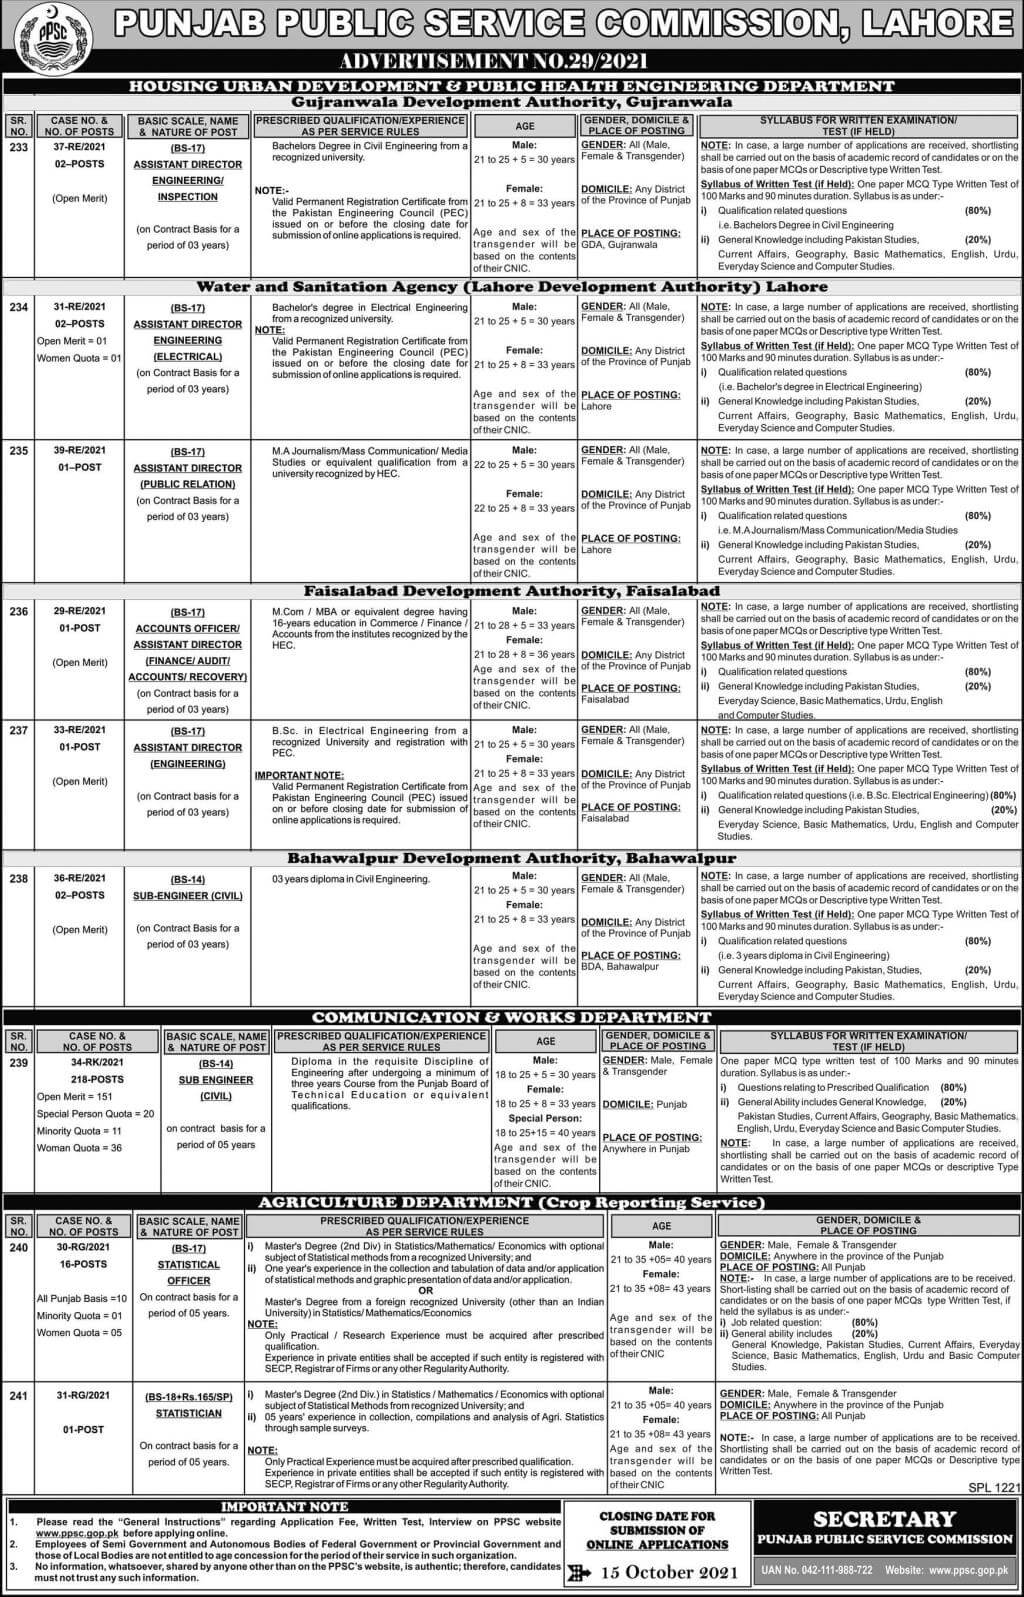 PPSC Jobs Today October 2021 At Punjab Public Service Commission